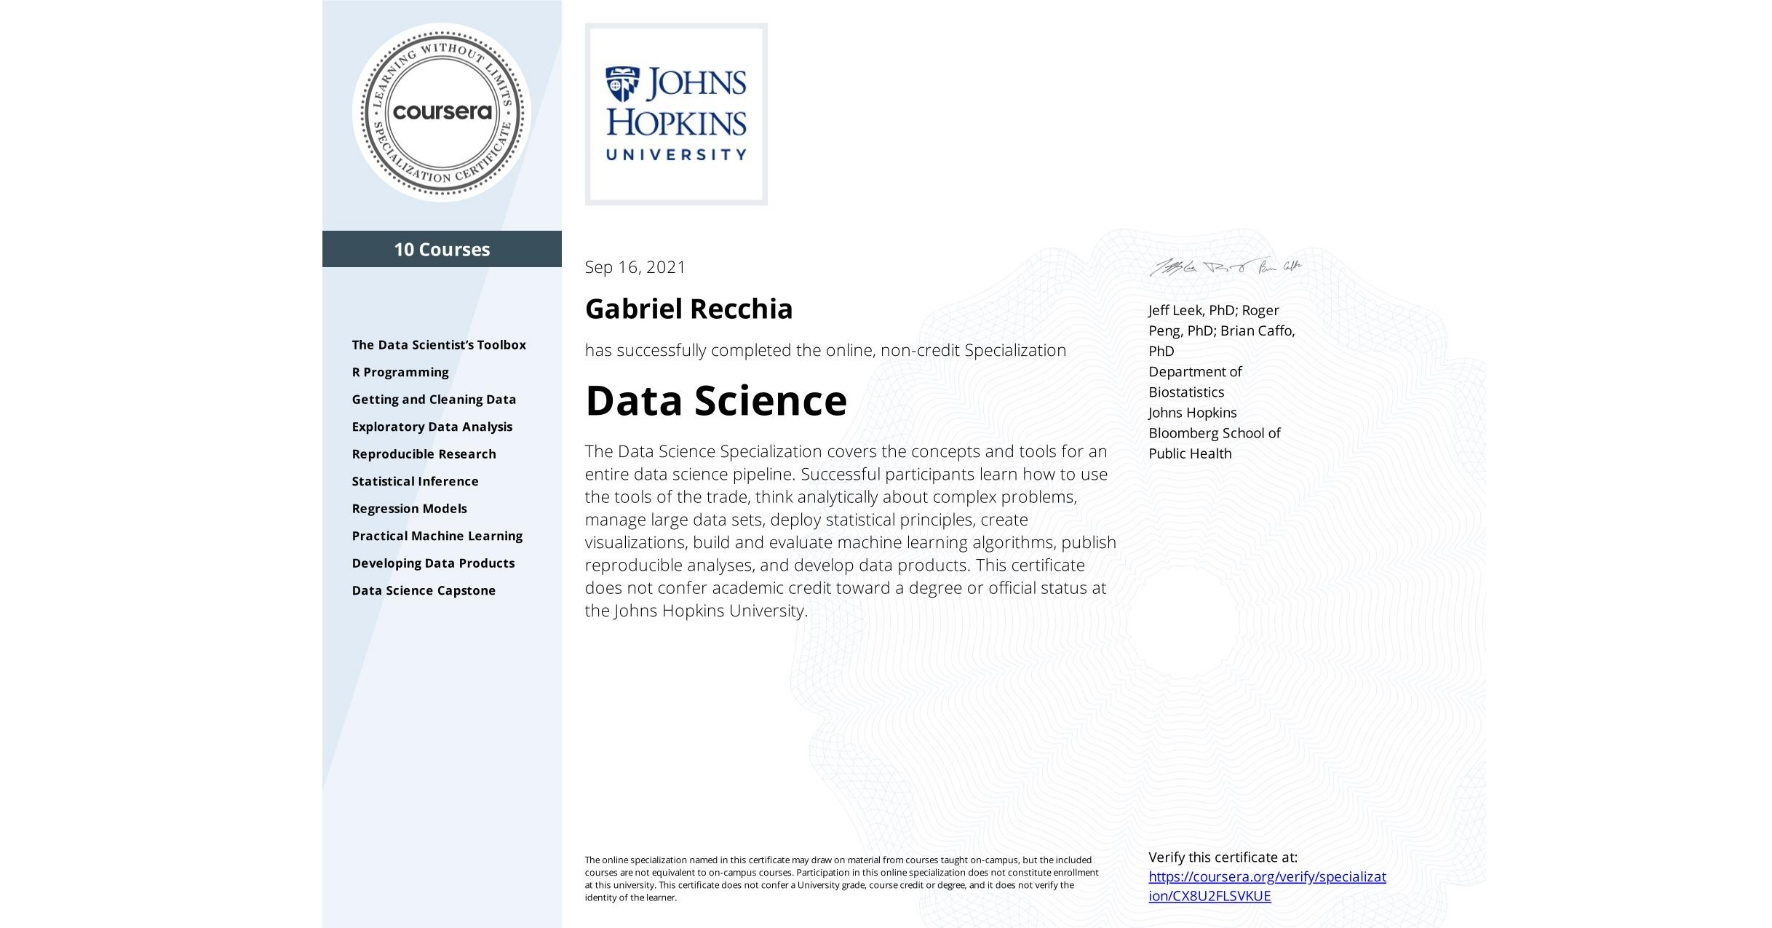 View certificate for Gabriel Recchia, Data Science, offered through Coursera. The Data Science Specialization covers the concepts and tools for an entire data science pipeline. Successful participants learn how to use the tools of the trade, think analytically about complex problems, manage large data sets, deploy statistical principles, create visualizations, build and evaluate machine learning algorithms, publish reproducible analyses, and develop data products.    This certificate does not confer academic credit toward a degree or official status at the Johns Hopkins University.